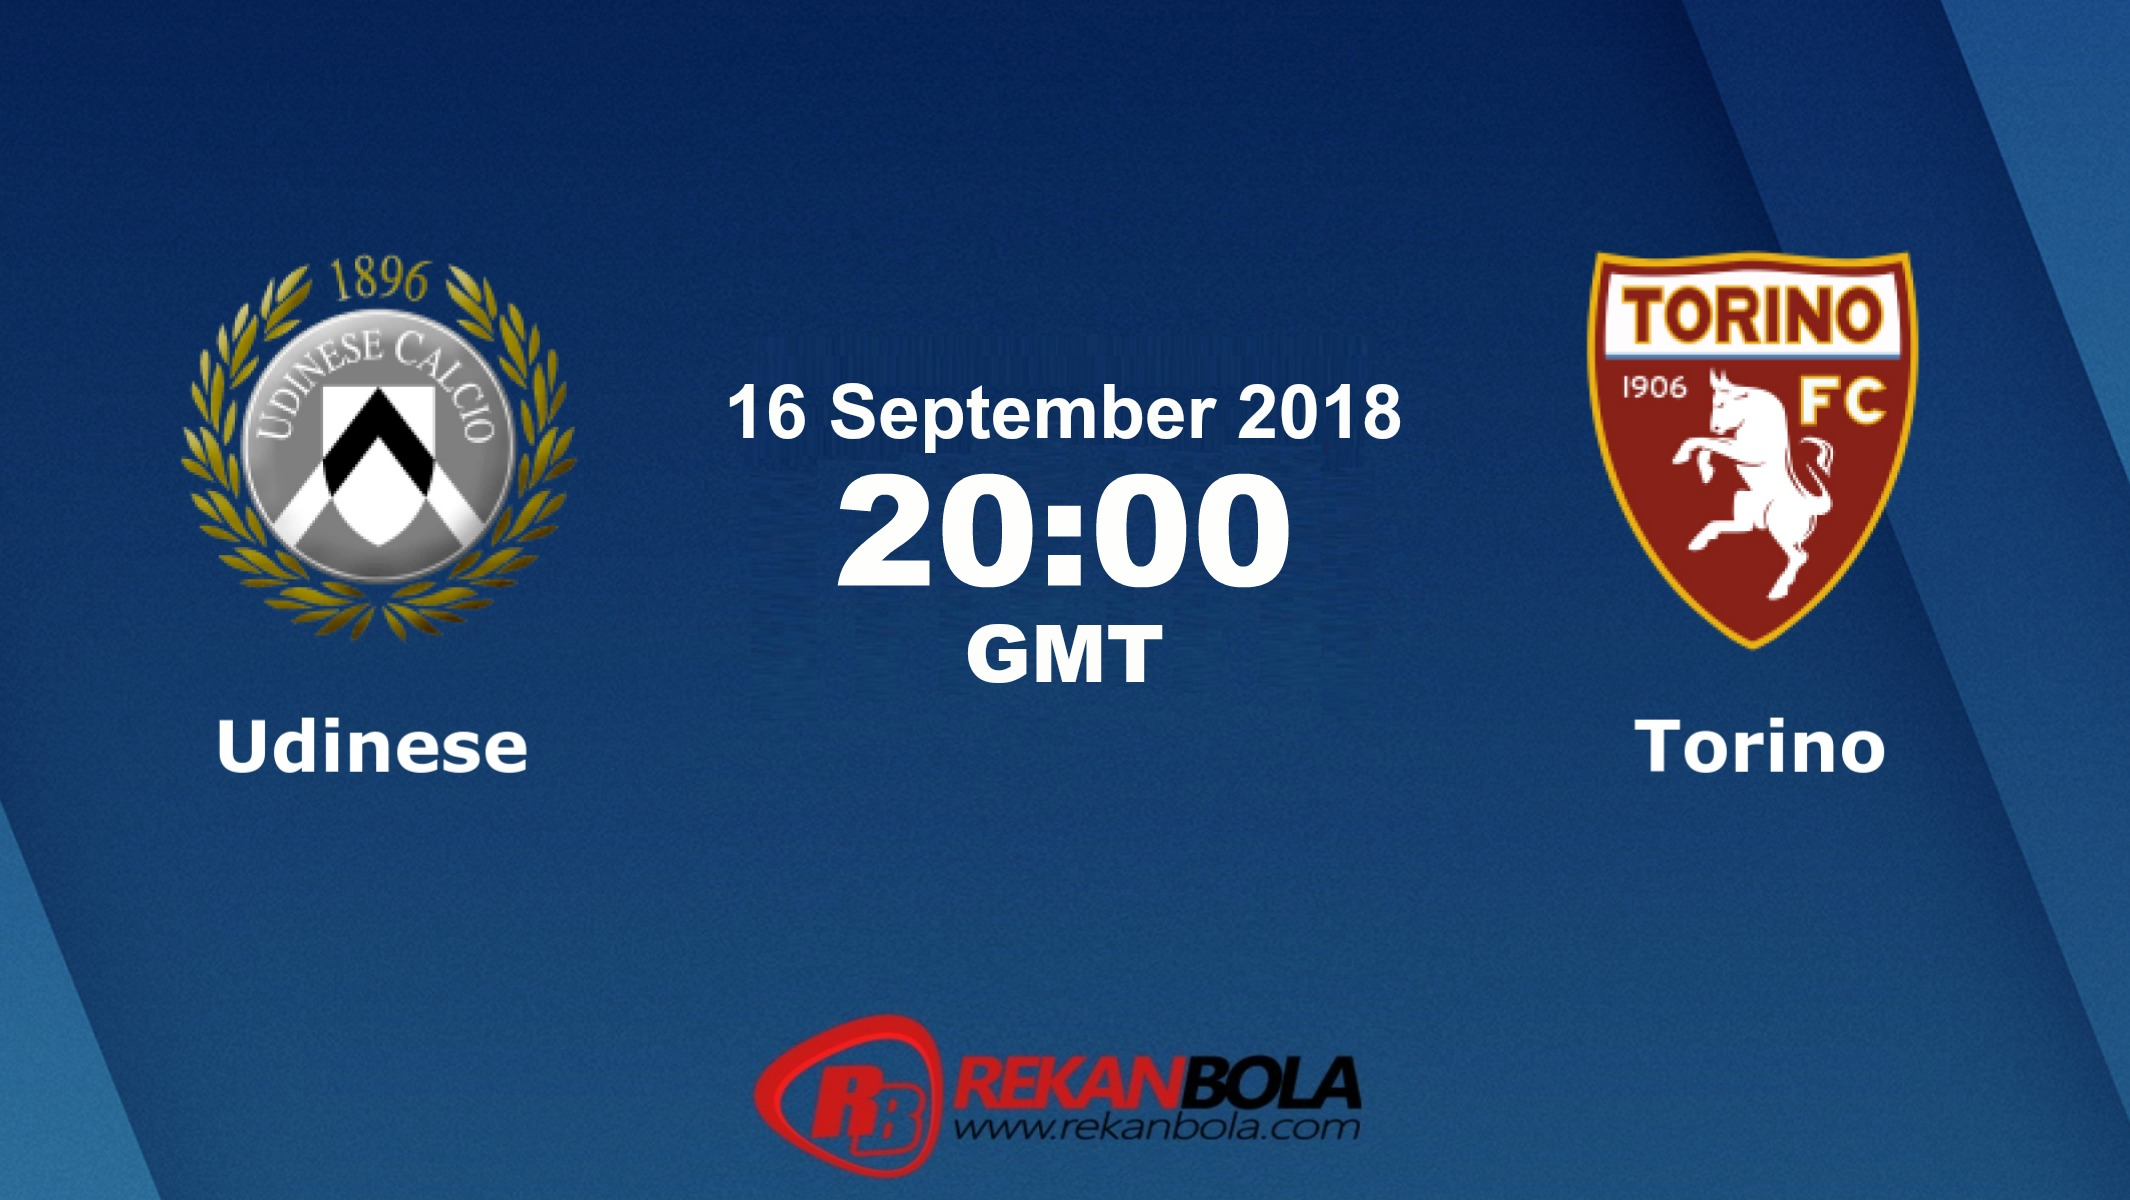 Nonton Siaran Live Streaming Udinese Vs Torino 16 September 2018